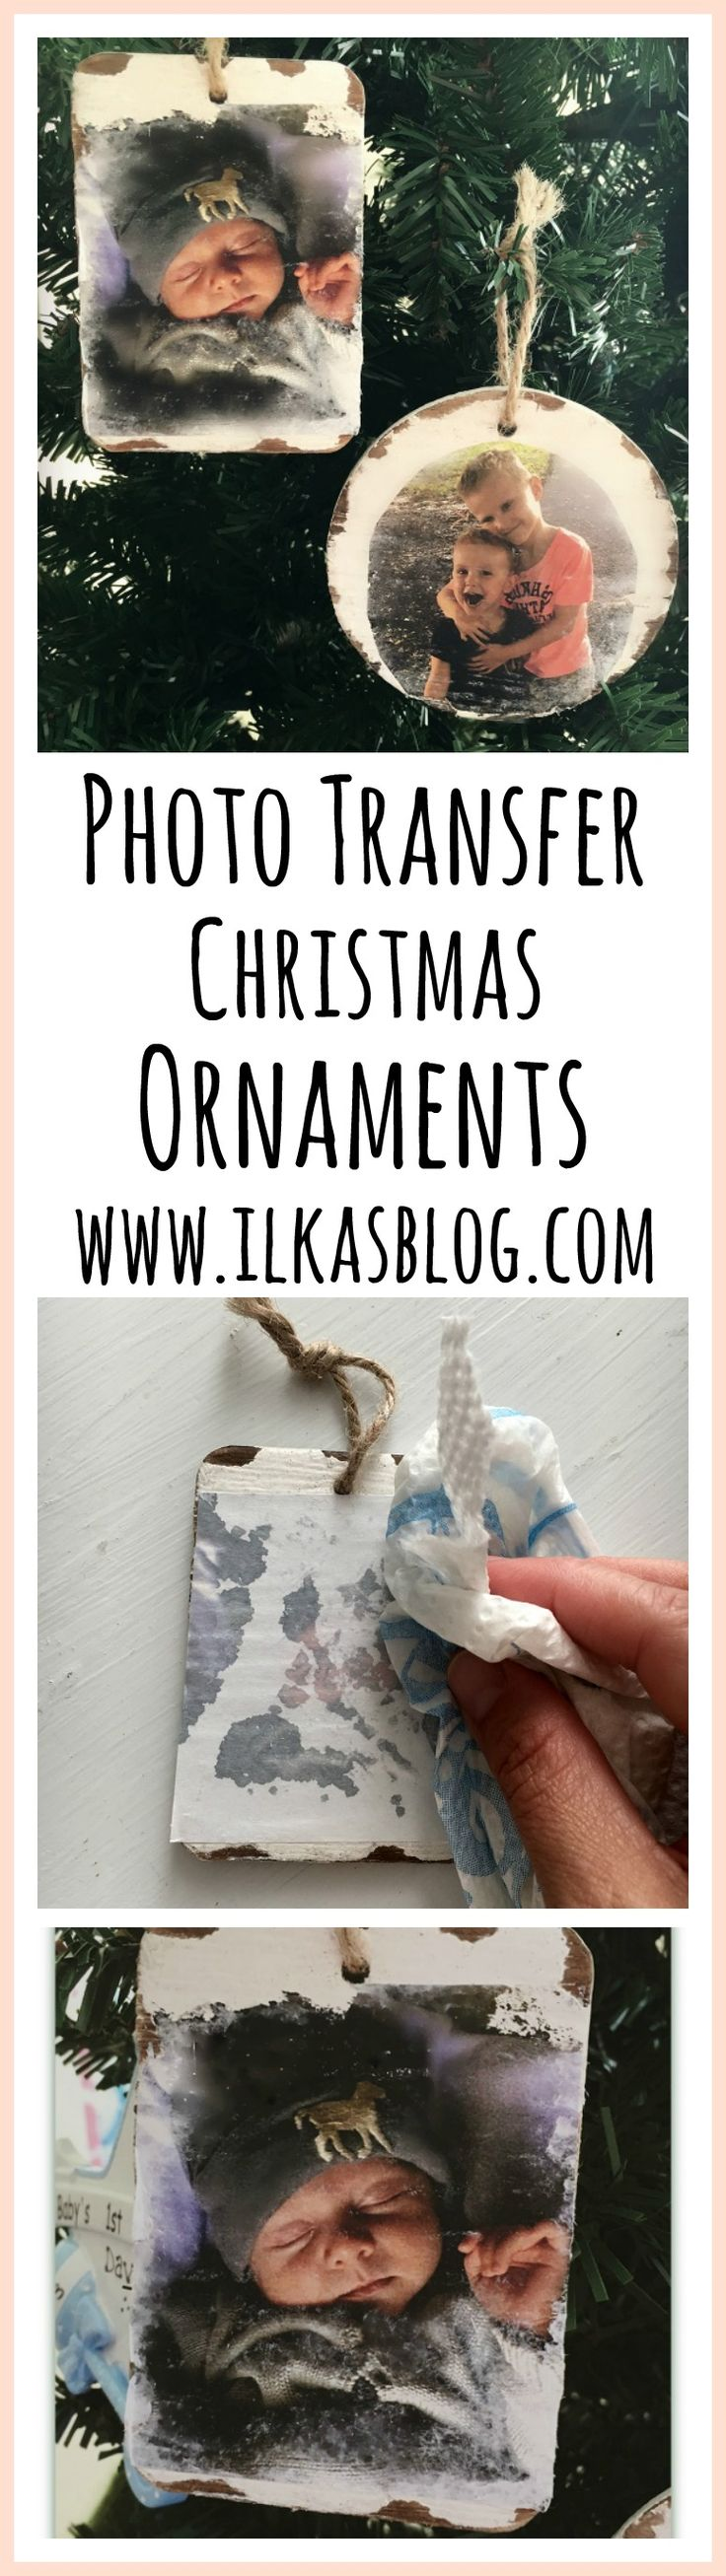 Photo Transfer Christmas Ornaments are a creative craft project for the holidays. Save your favorite pictures onto your ornaments. These DIY ornaments also make a wonderful gift idea! #craft #Christmas #DIY #photo #transfer #ornaments #holidayfun